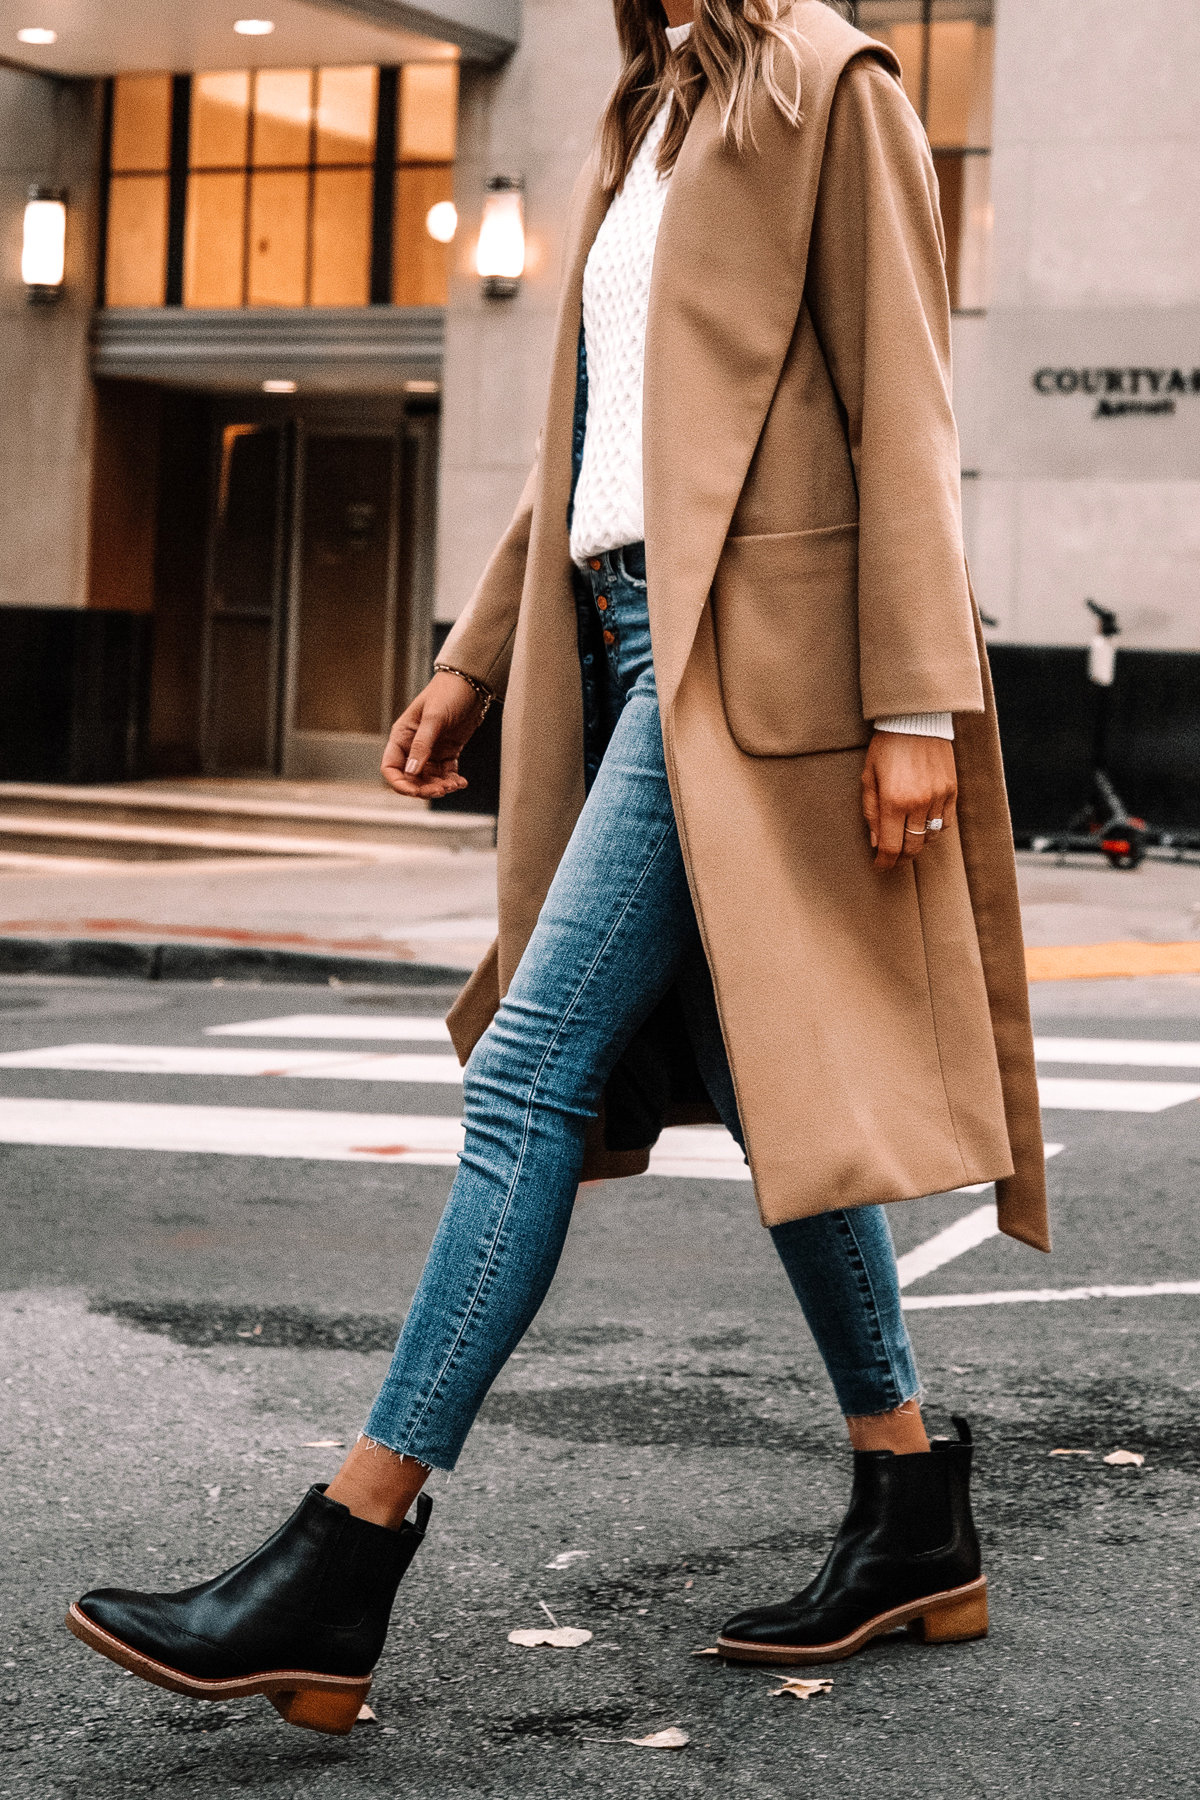 Fashion Jackson Wearing Jcrew Camel Wrap Coat White Swetaer Raw Hem Jeans Black Lug Sole Boots Winter Outfit Street Style